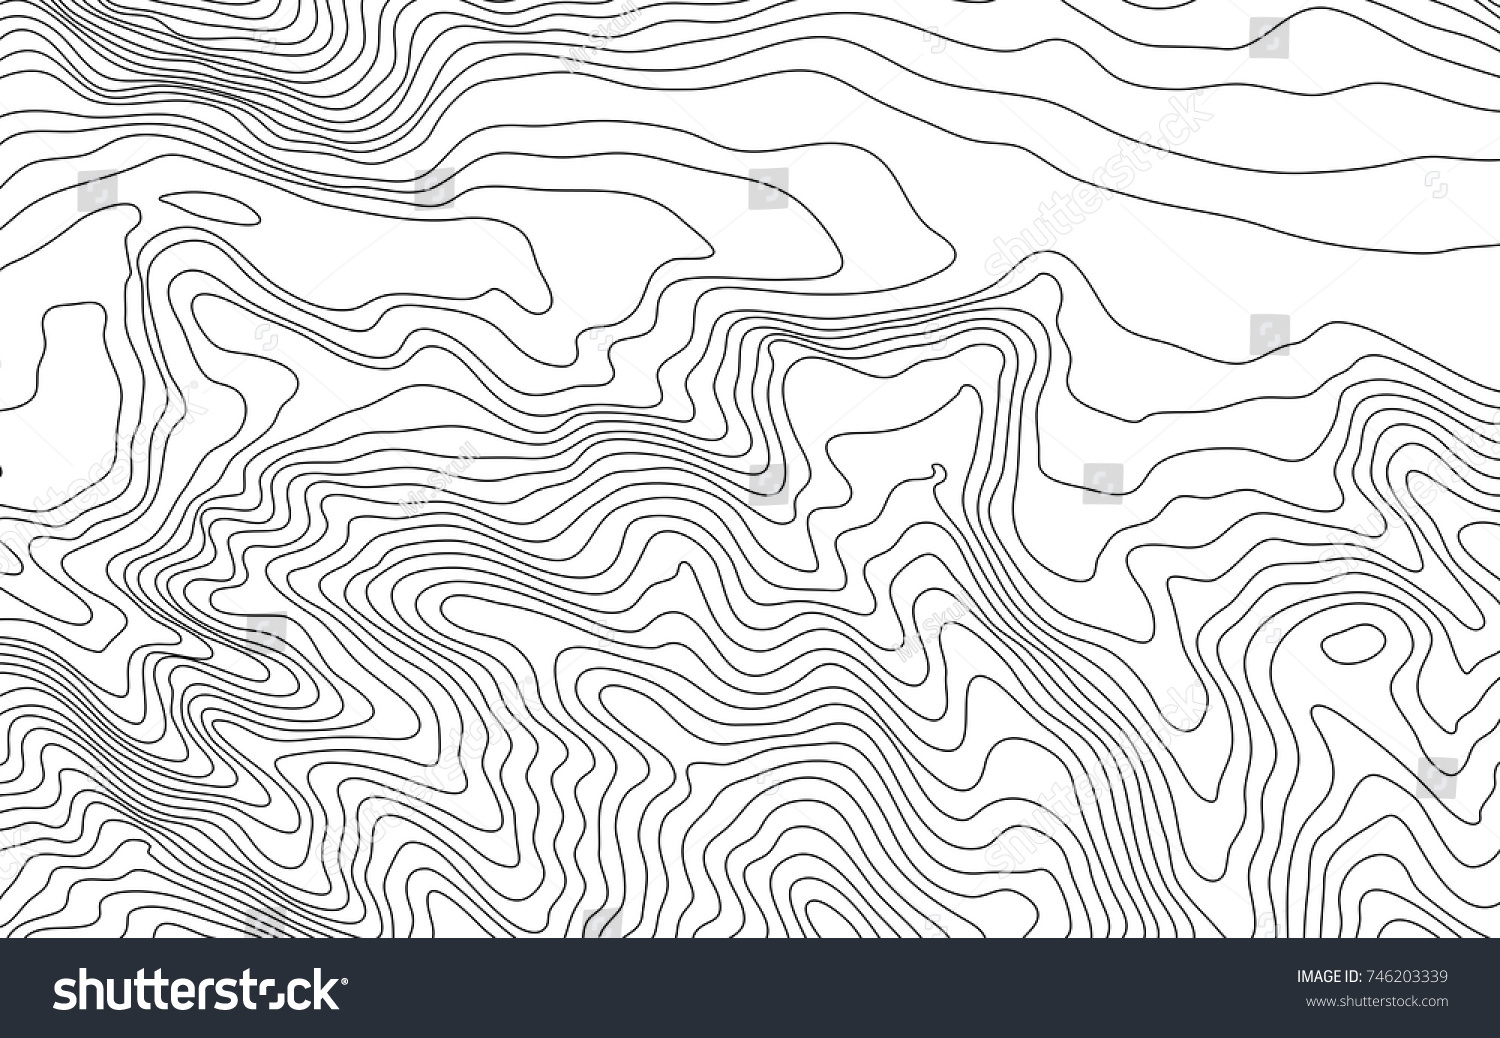 Stylized Height Topographic Map Contour Lines Stock Vector